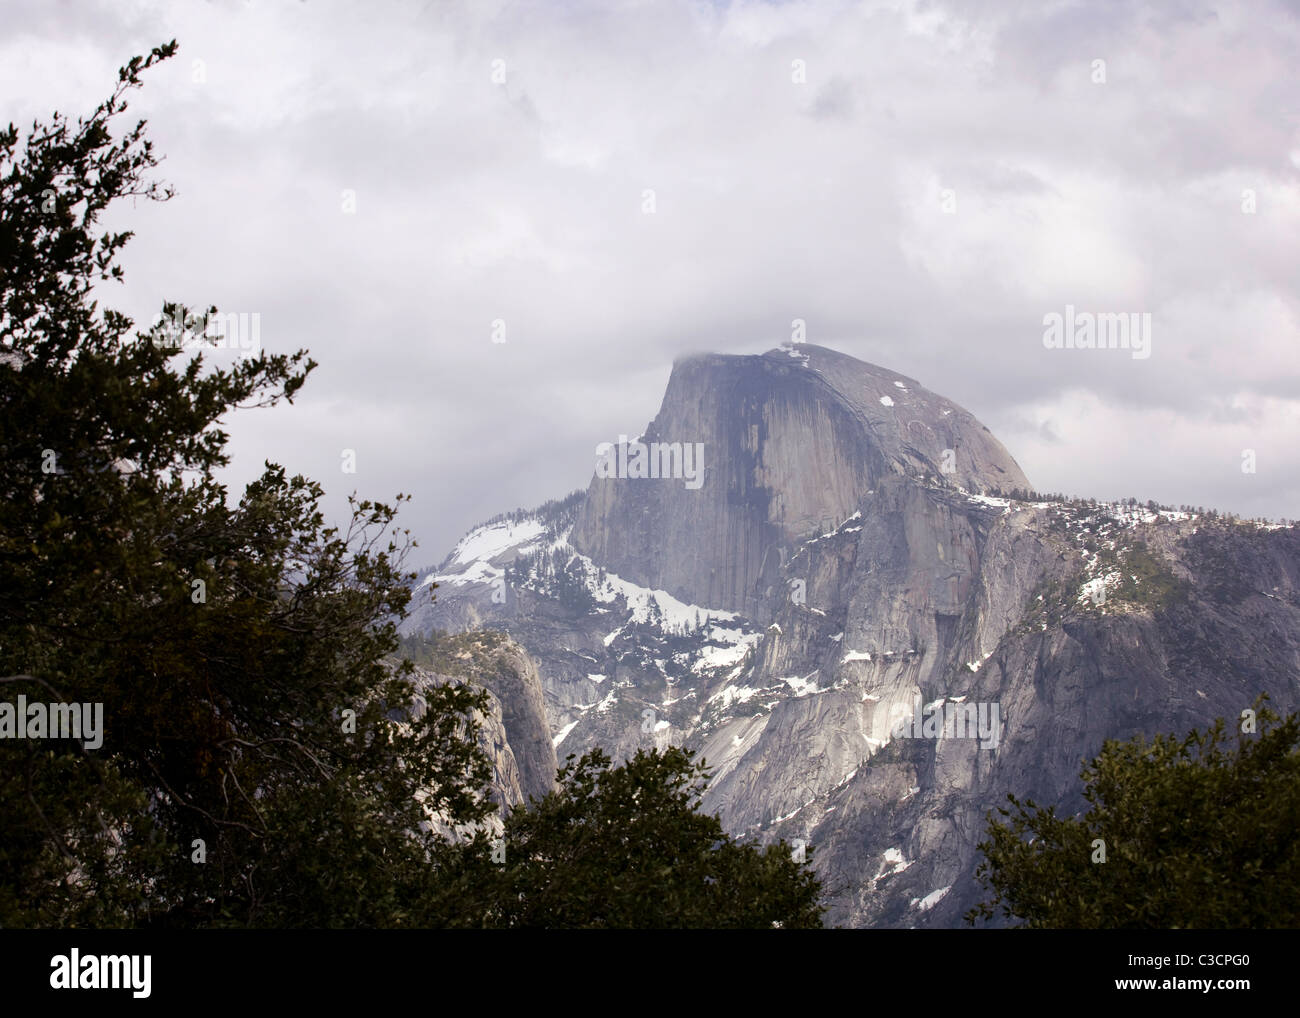 Yosemite's Half Dome under cloudy sky - Stock Image